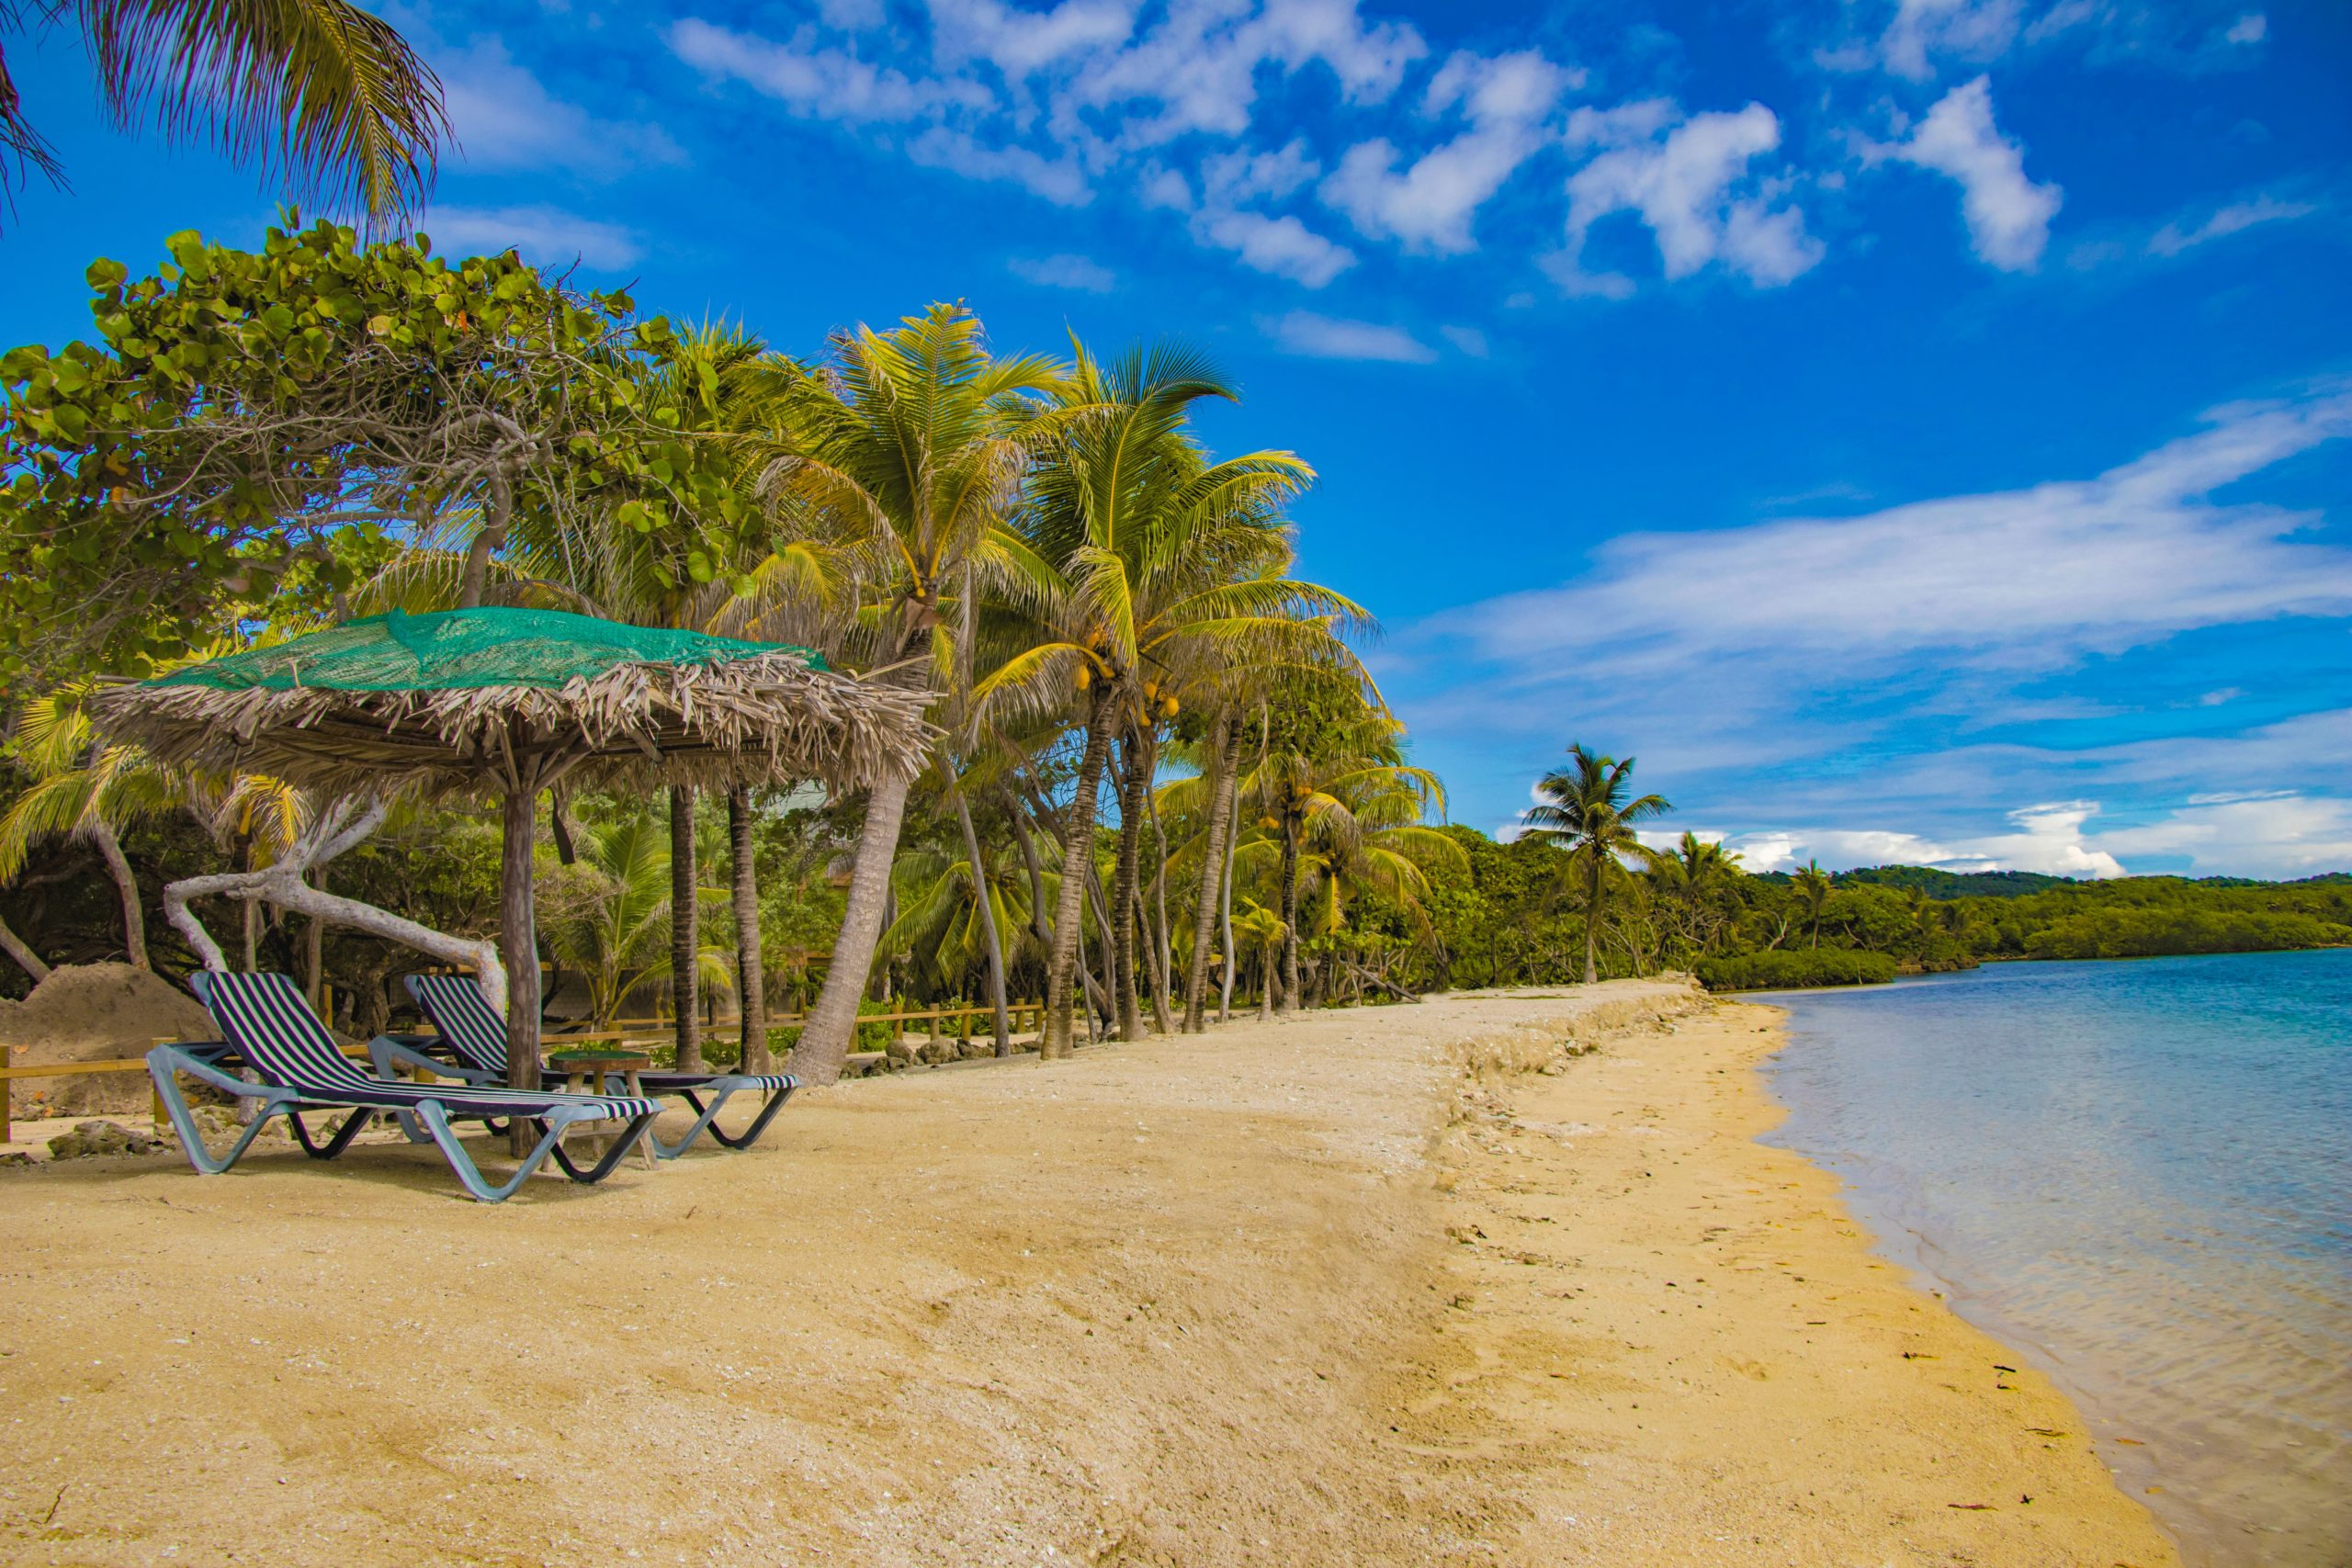 Travel Guide in Honduras – How, Where & Frequently Asked Questions